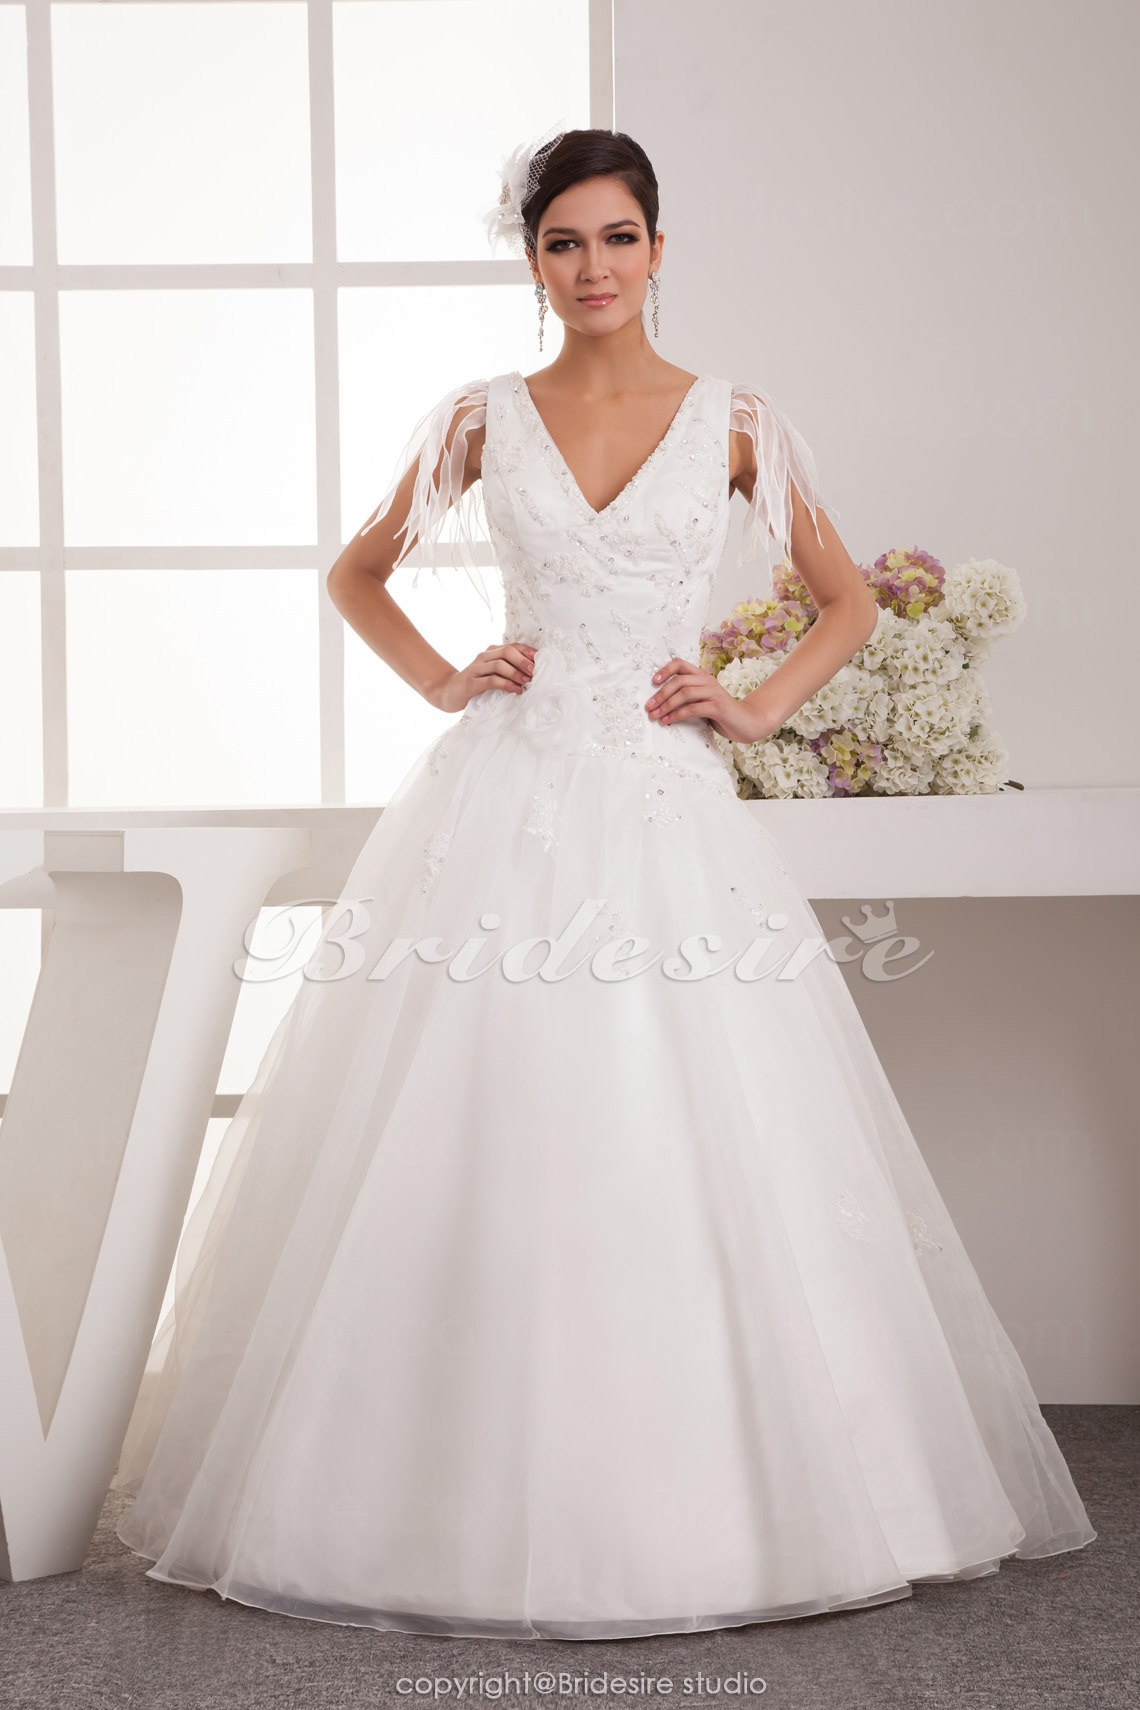 Princess V-neck Floor-length Sleeveless Satin Chiffon Wedding Dress